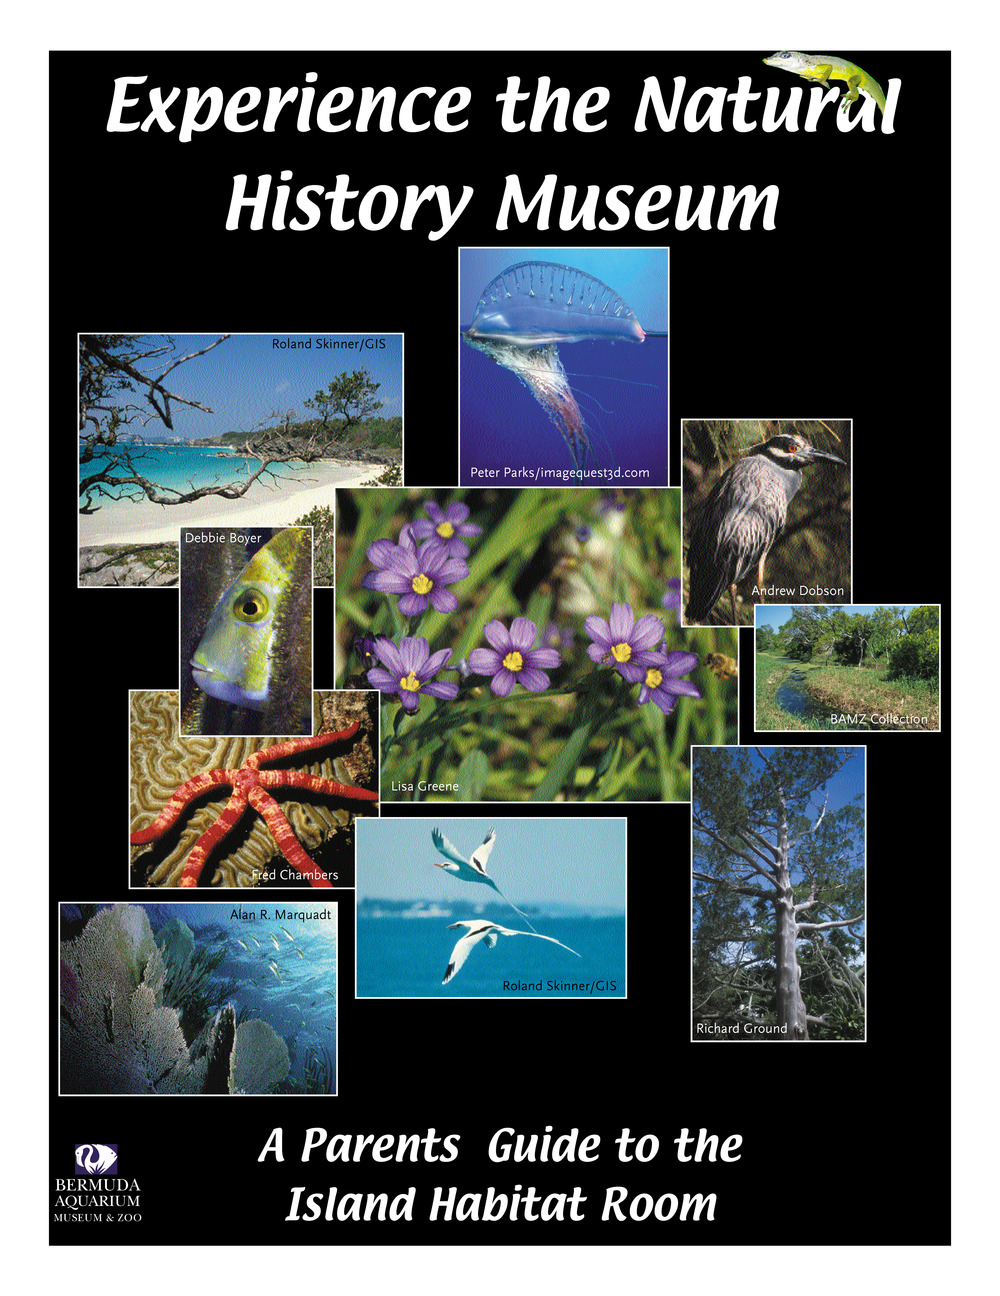 Download the parent's guide to the Island Habitat Room